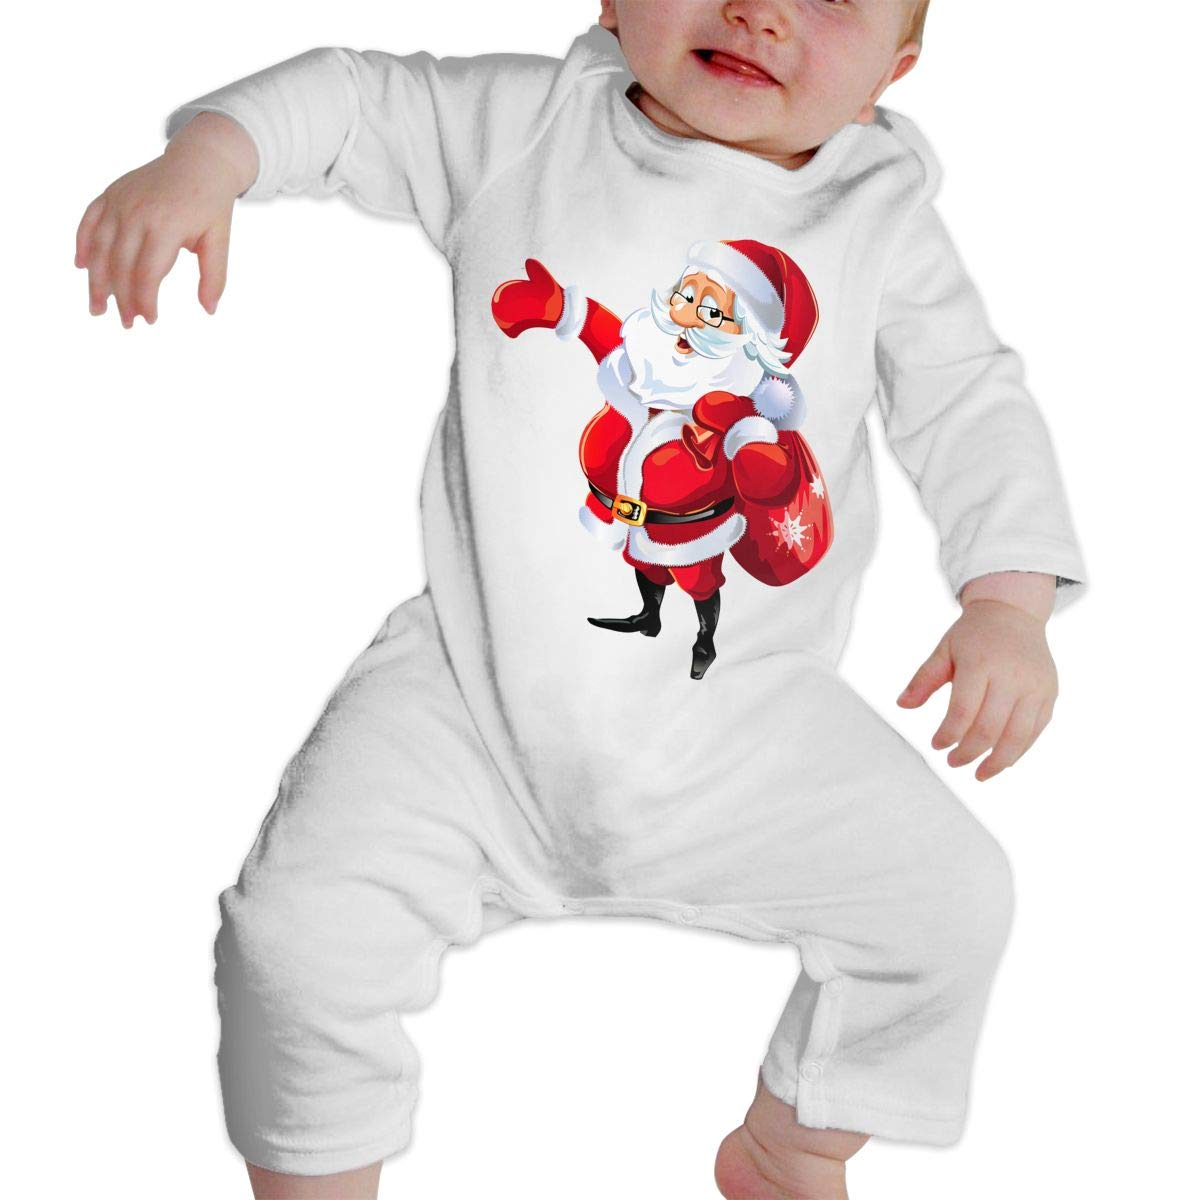 KAYERDELLE Santa Claus Christmas Long Sleeve Unisex Baby Bodysuits for 6-24 Months Boys /& Girls